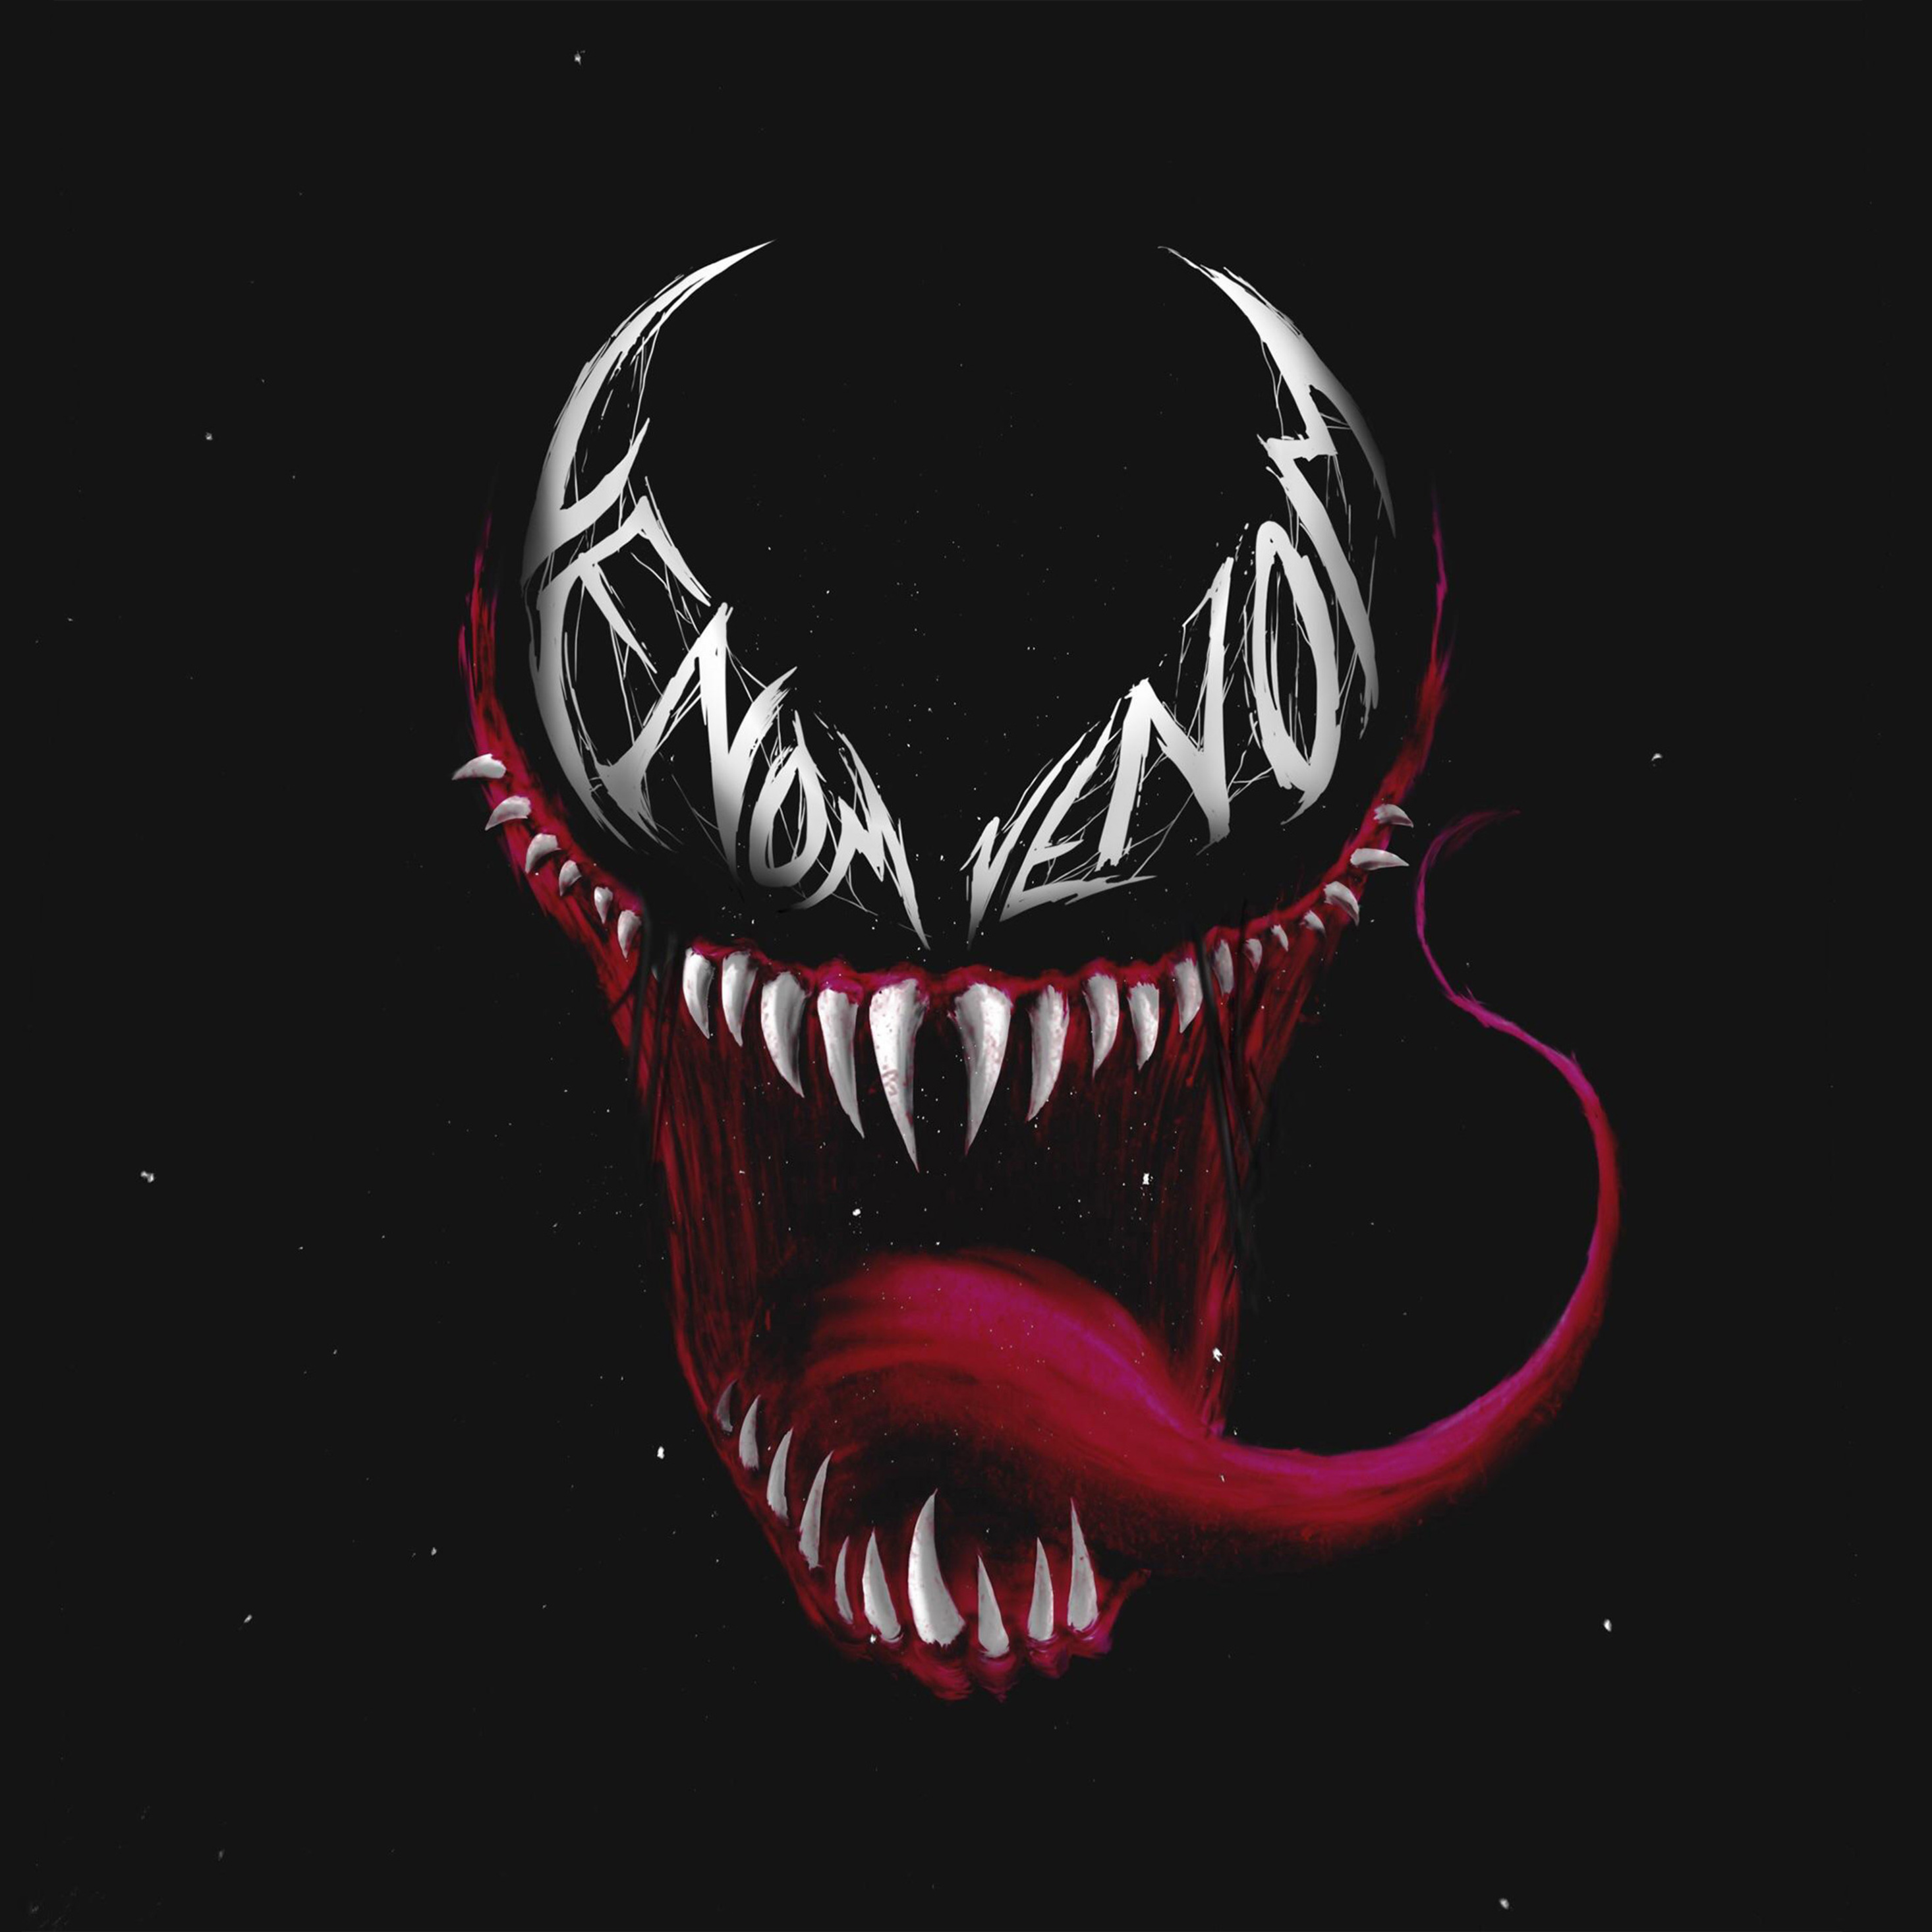 2932x2932 Venom Reddit Art Ipad Pro Retina Display HD 4k